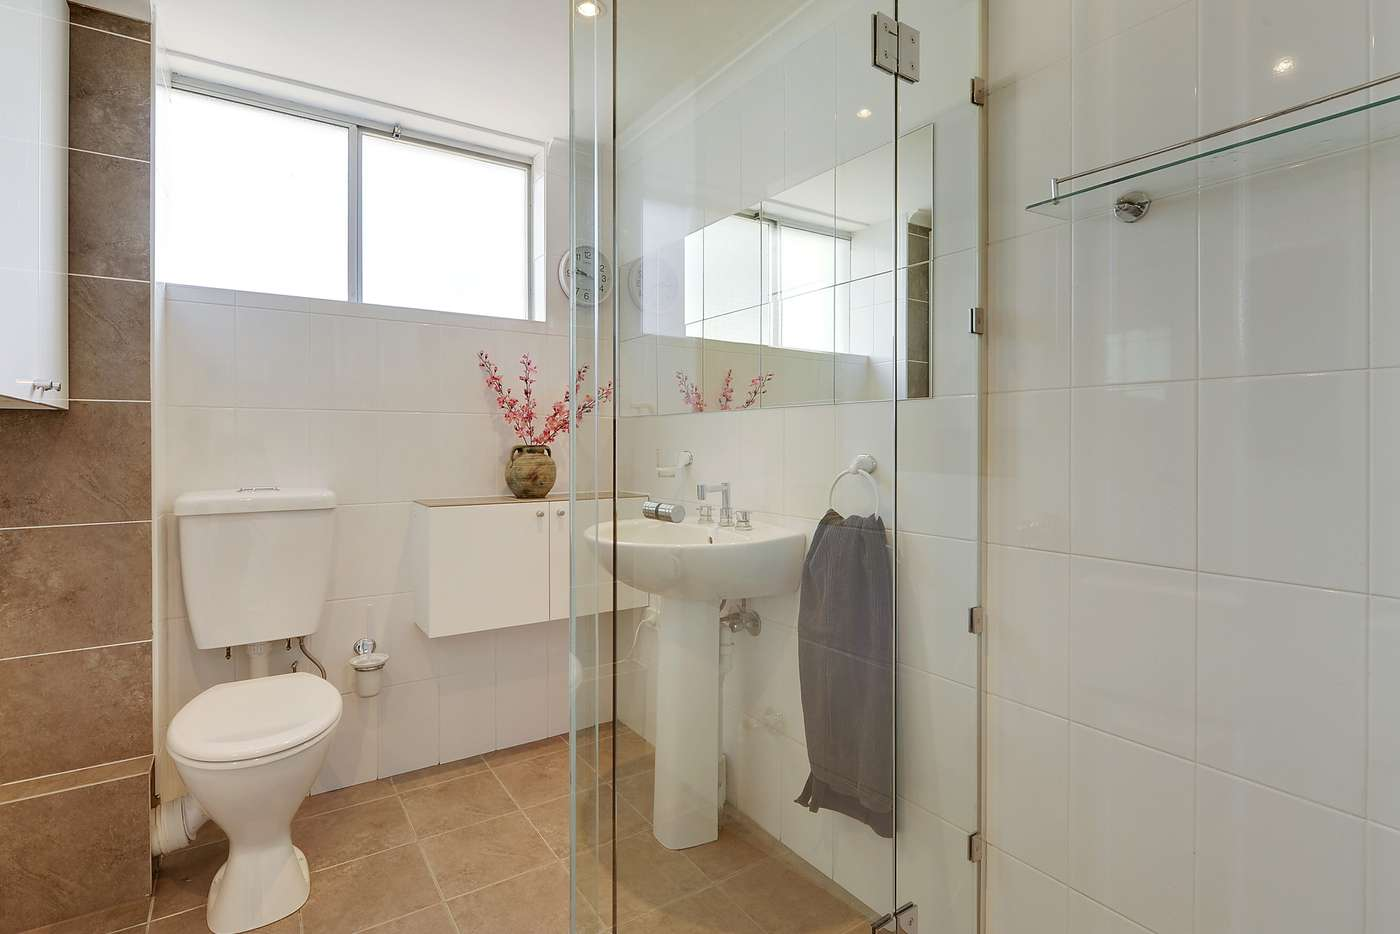 Sixth view of Homely apartment listing, 20/81-83 Florence Street, Hornsby NSW 2077